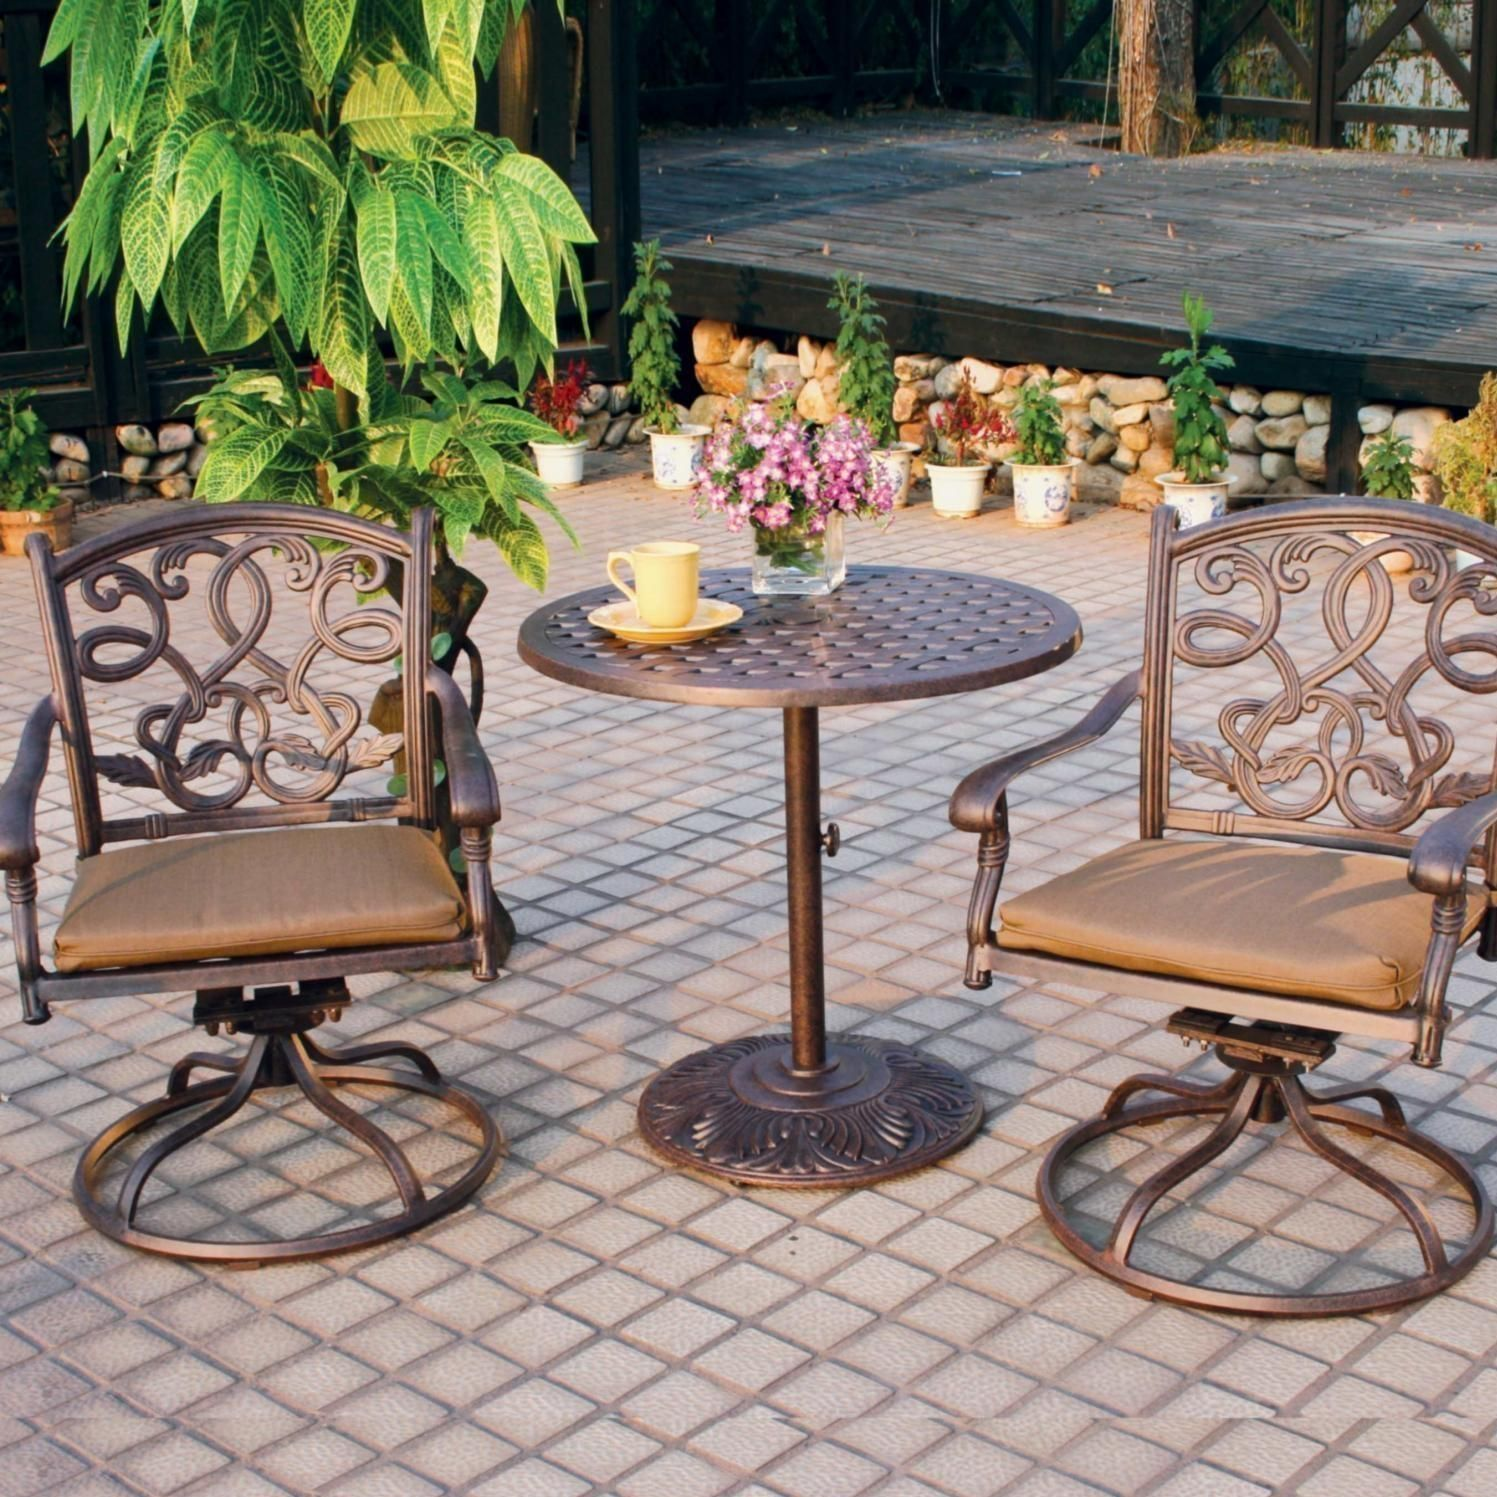 Superb Darlee Santa Monica 3 Piece Cast Aluminum Patio Bistro Set Interior Design Ideas Tzicisoteloinfo